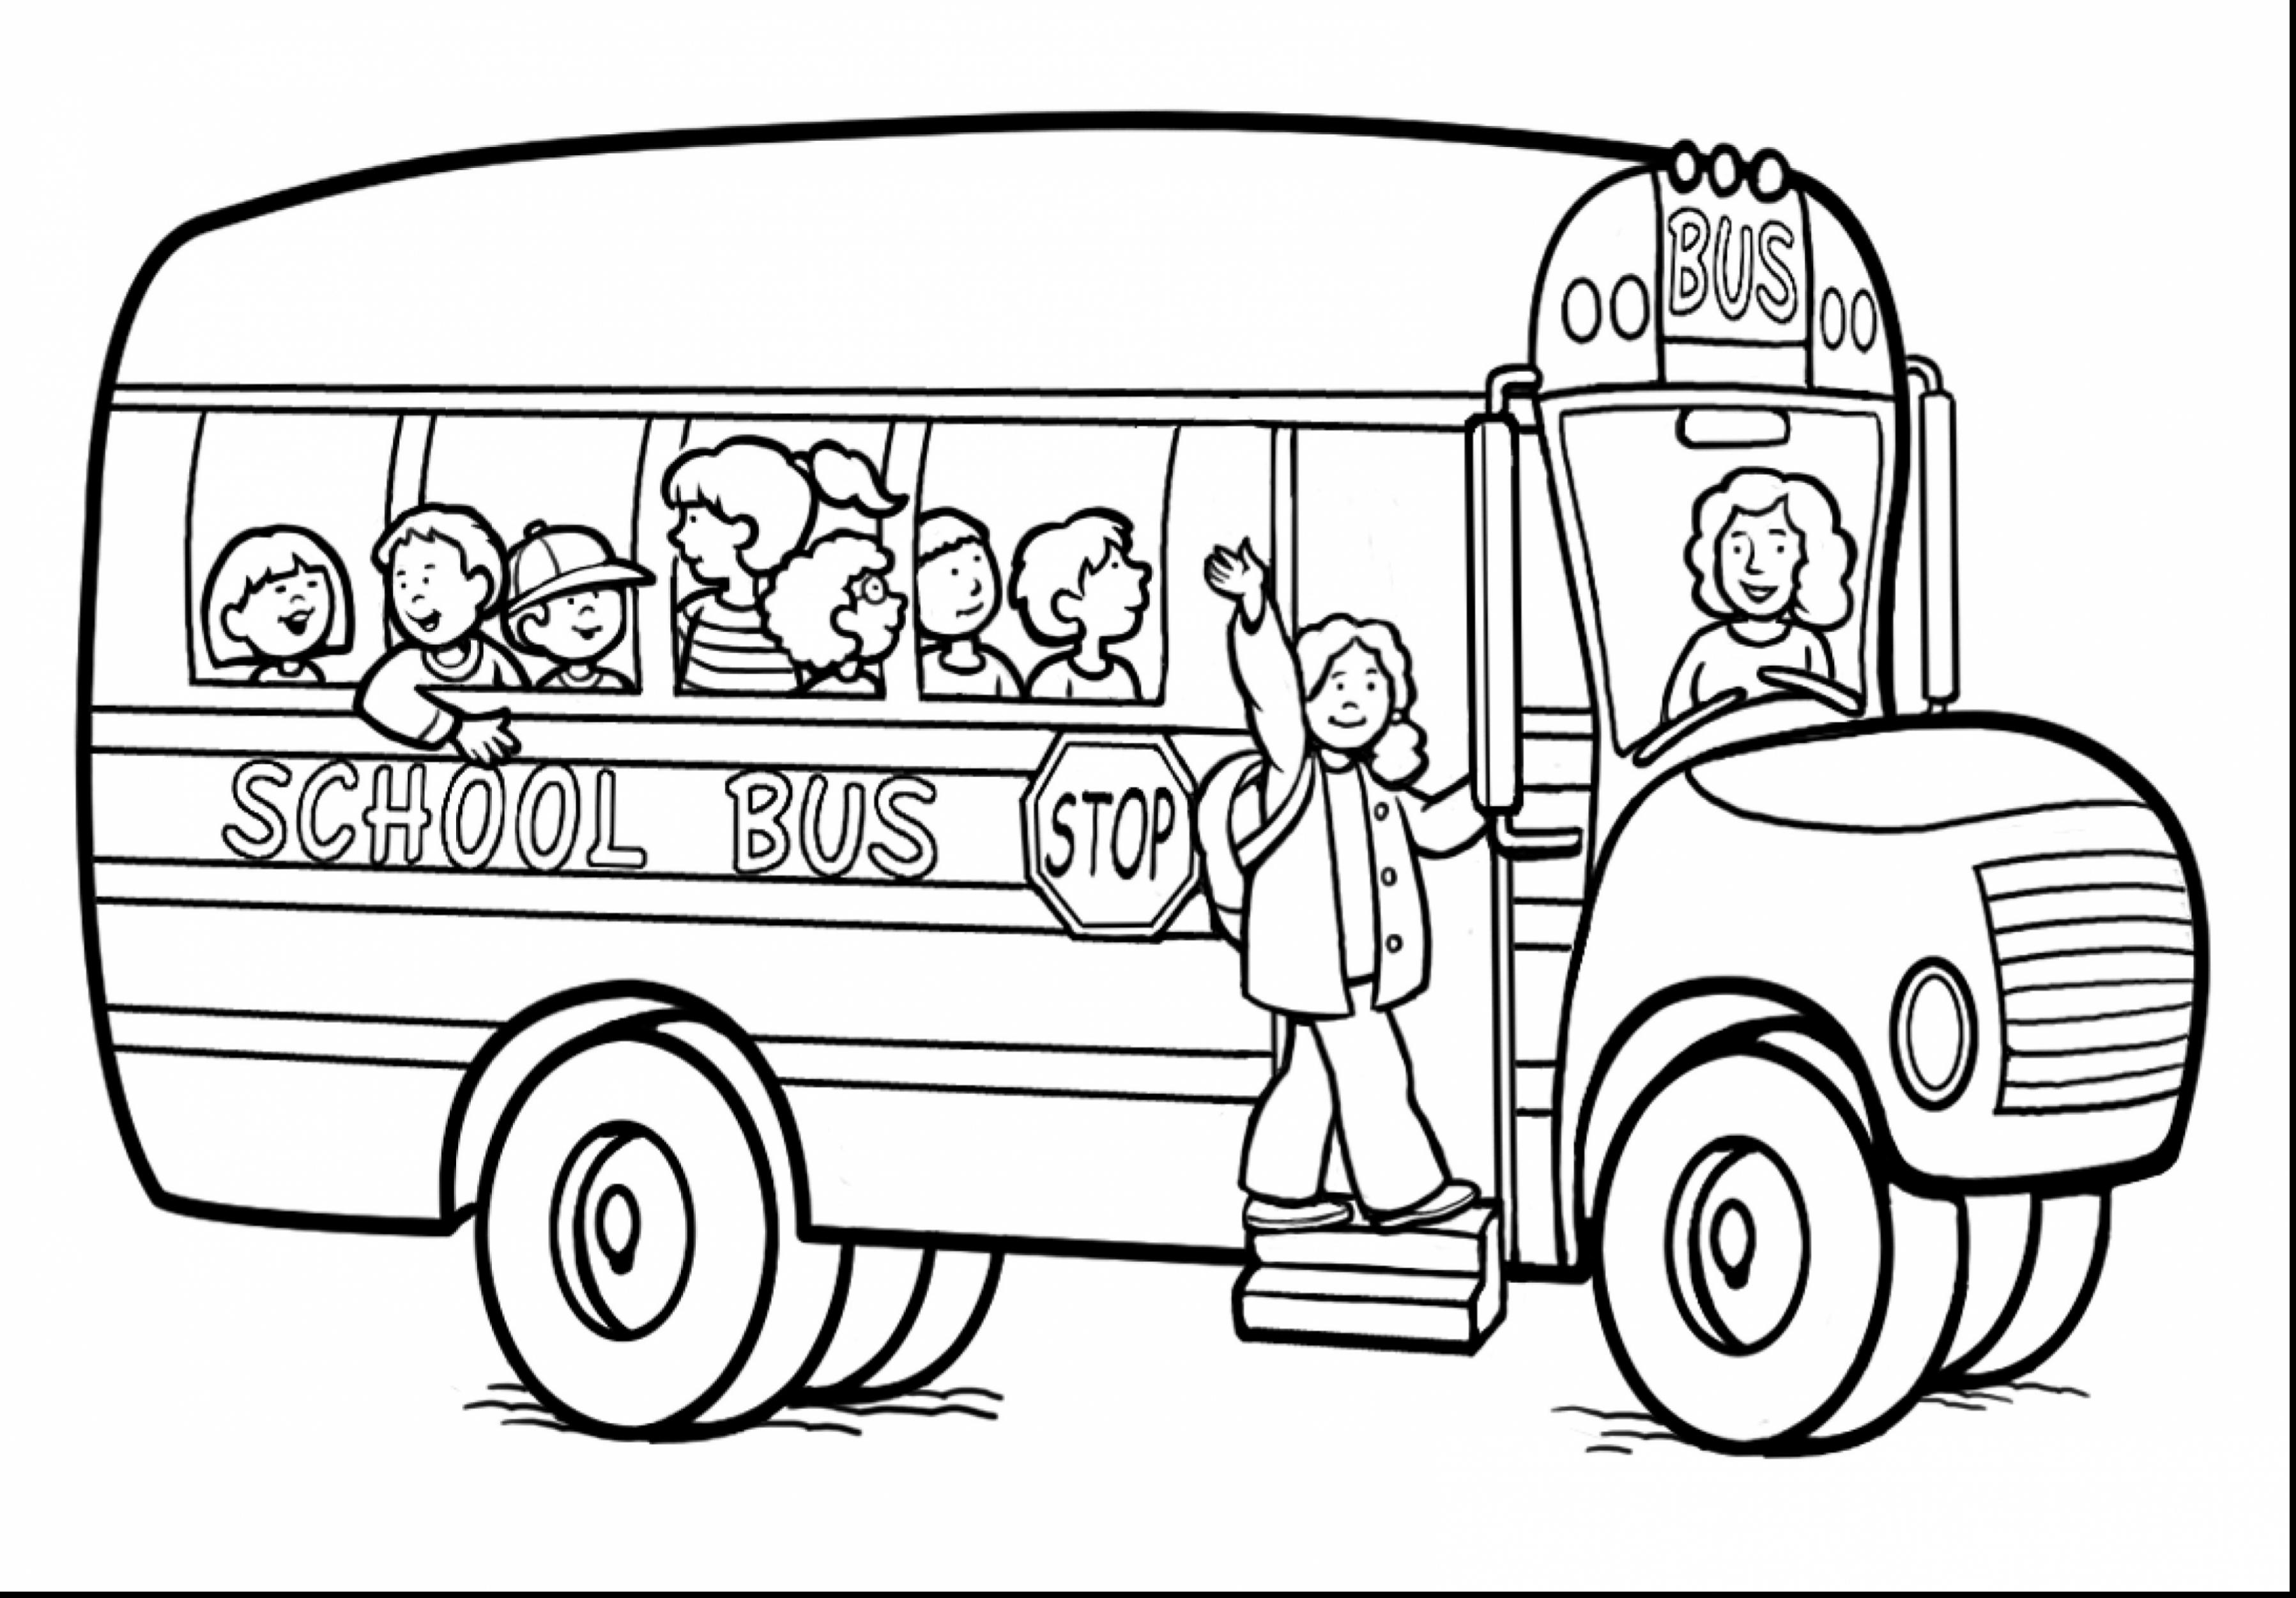 Free download clip art. Bus clipart black and white